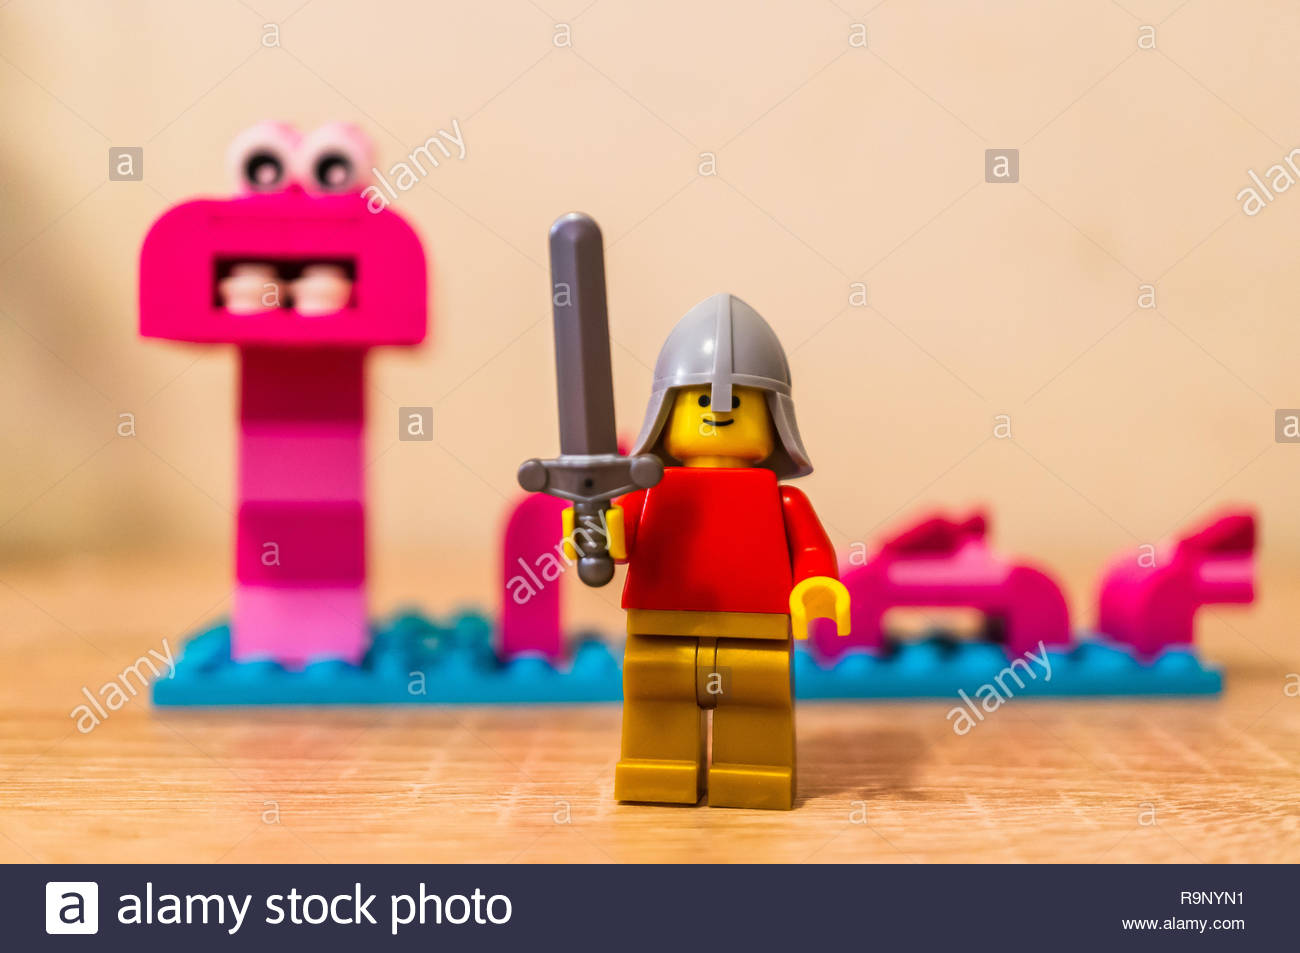 Poznan, Poland - December 26, 2018: Lego warrior holding a sword with monster in soft focus background. - Stock Image